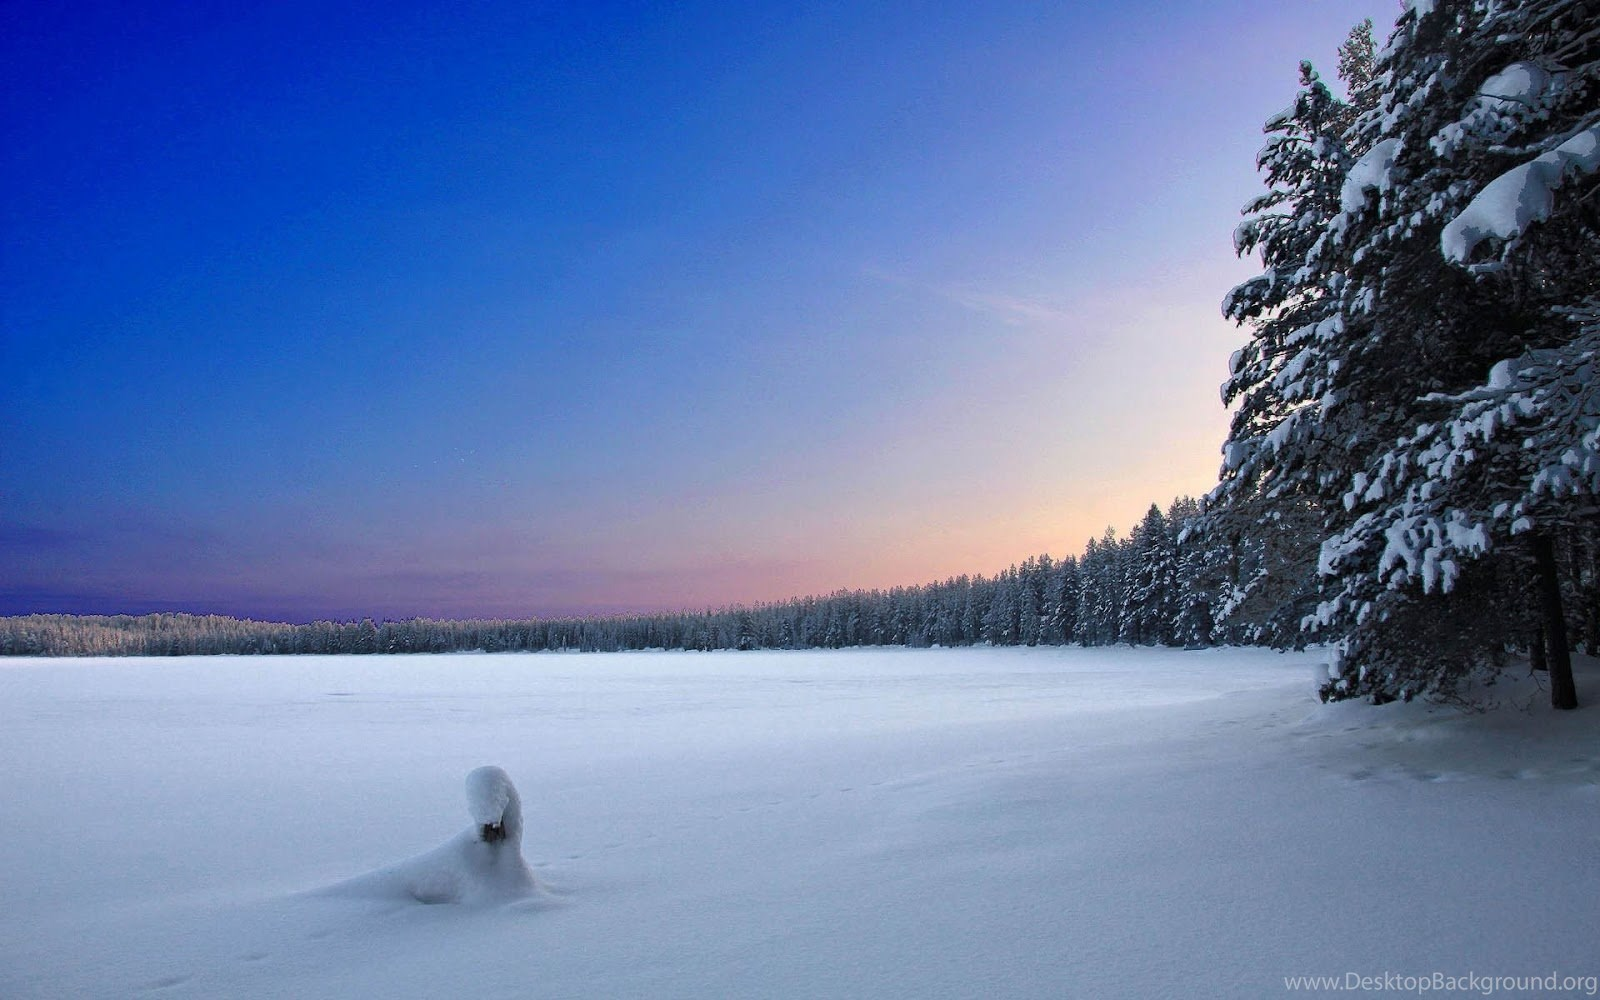 Wallpaper: Finland Wallpapers Hd Desktop Background